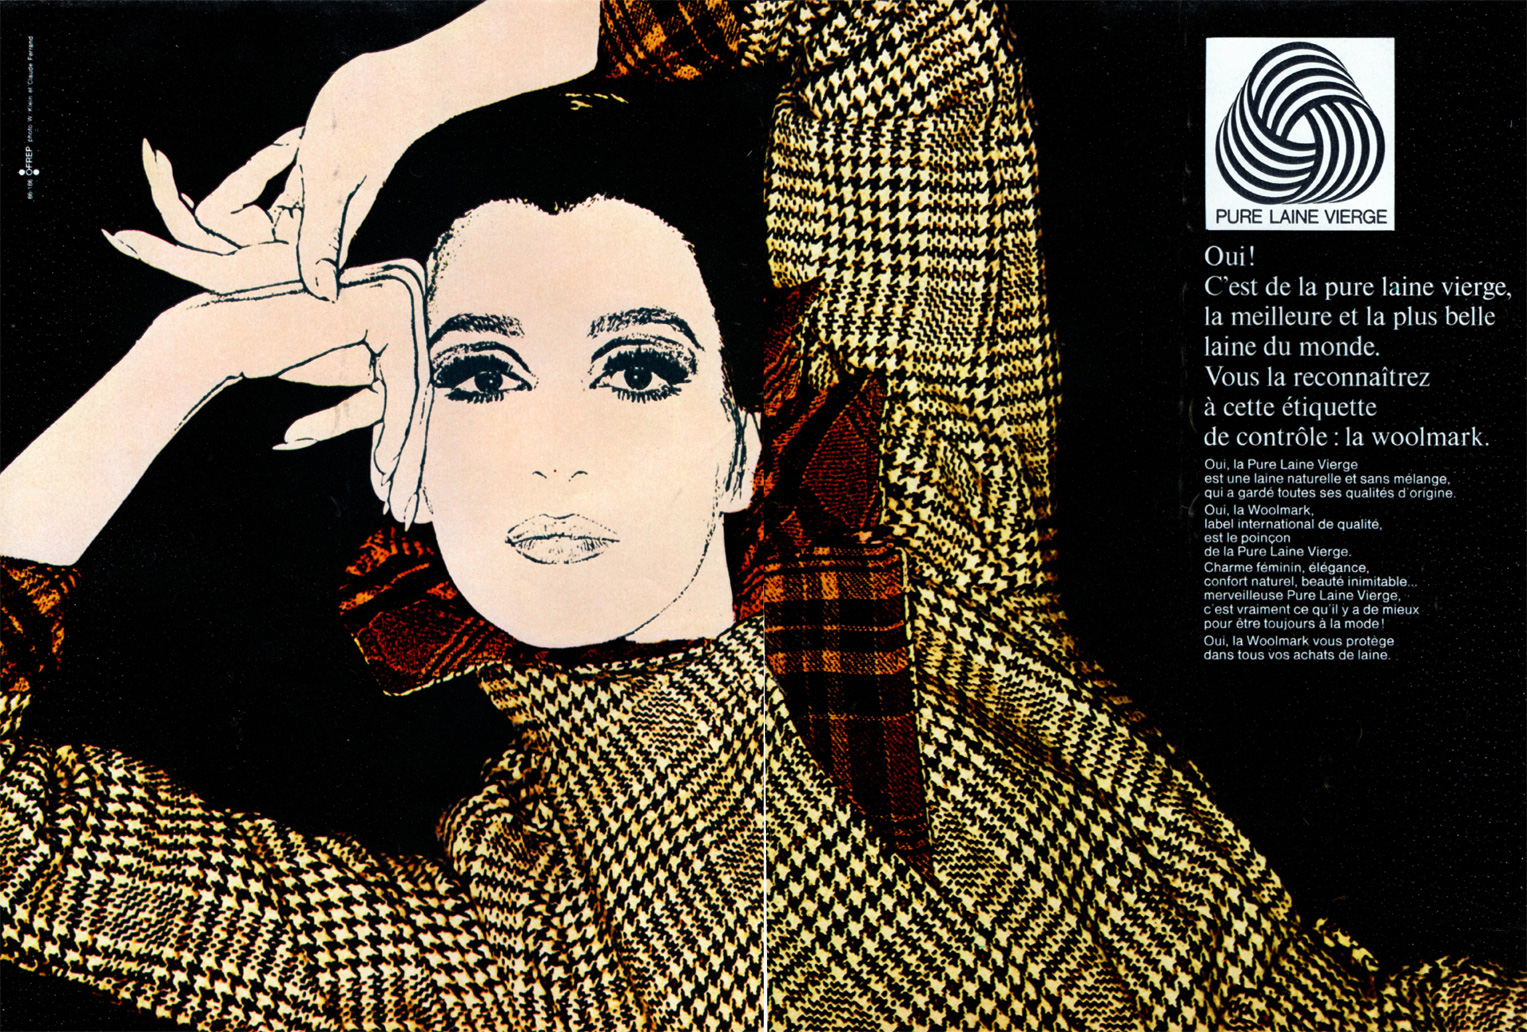 Woolmark advertising campaign in France, 1966